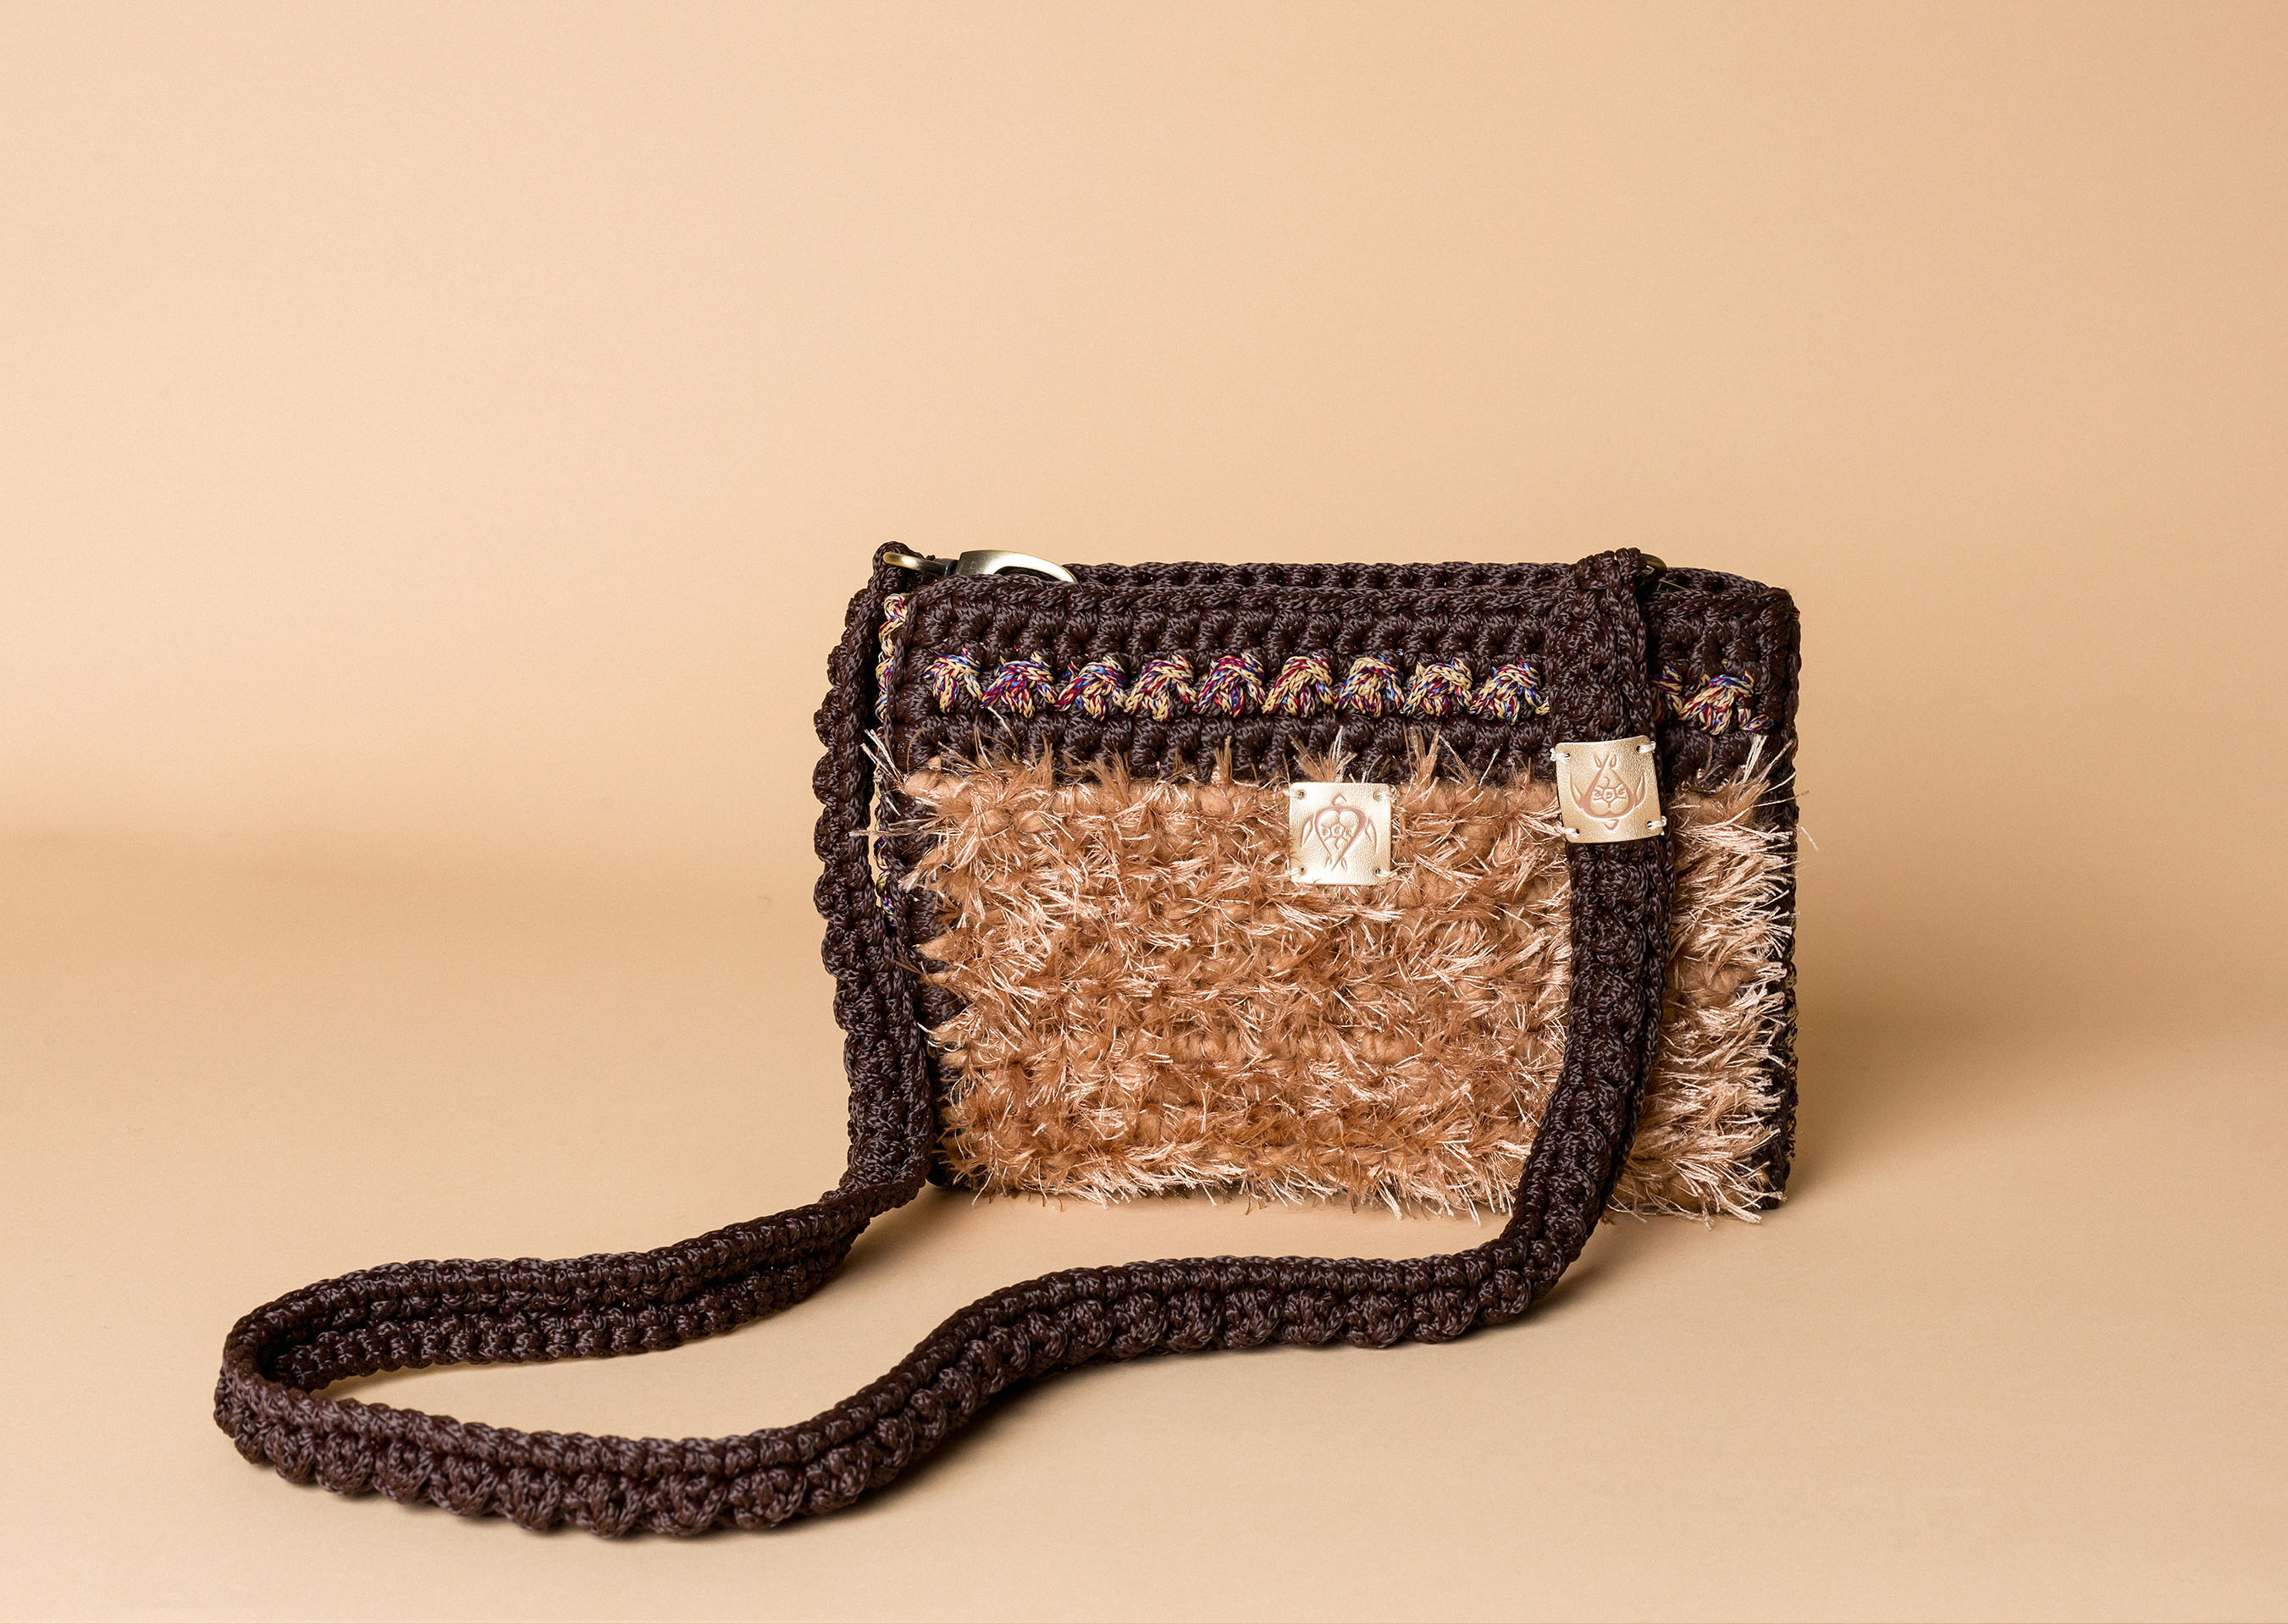 knitted bag petit in camel